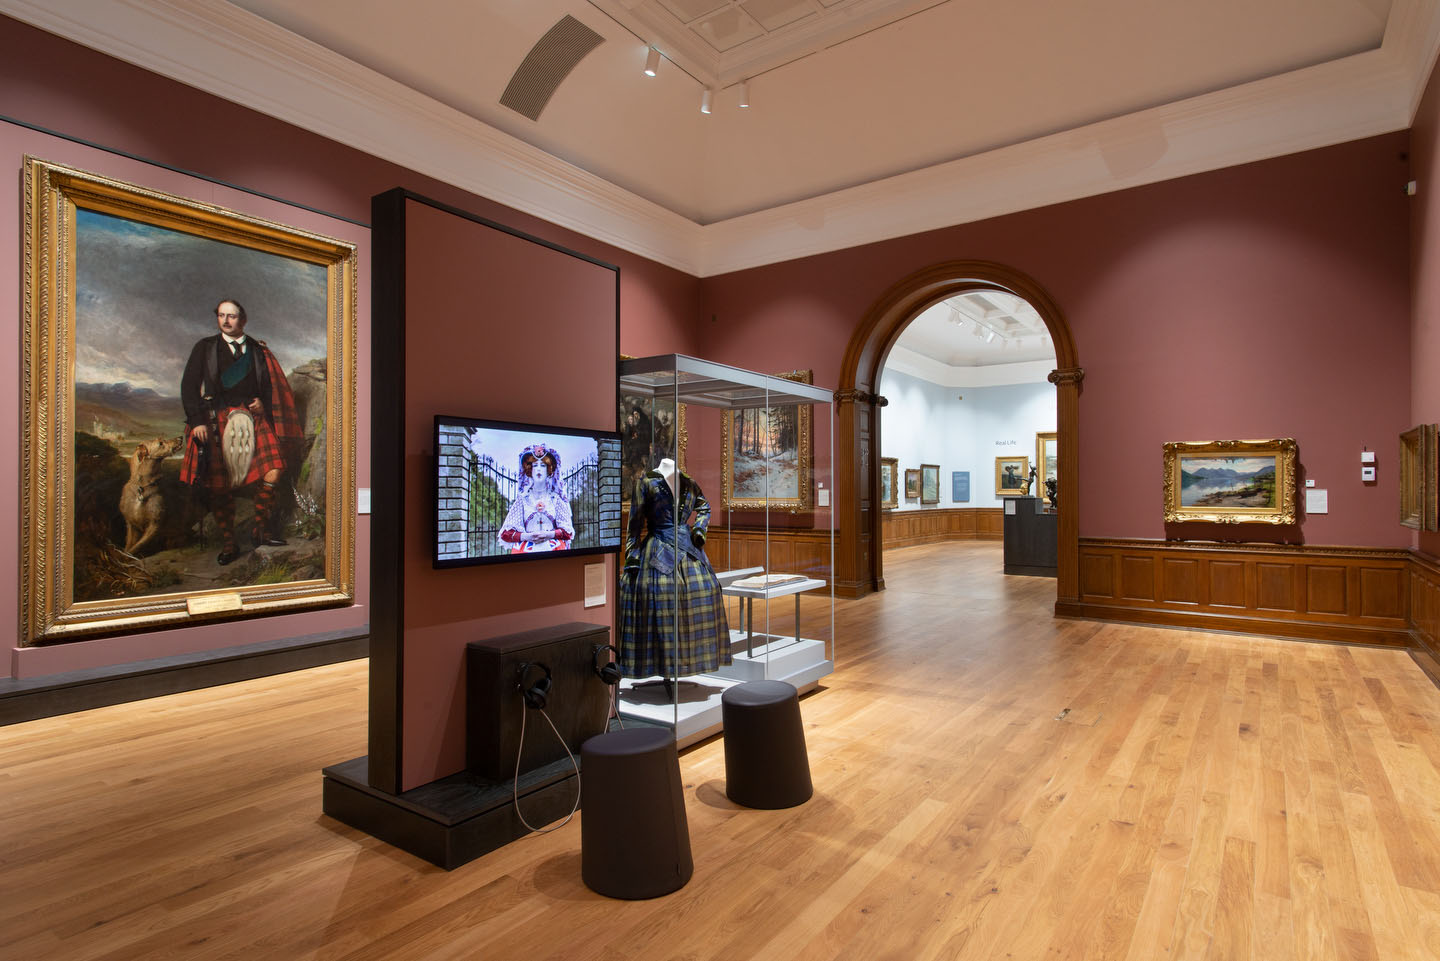 View through a gallery with paintings, TV screen and arch